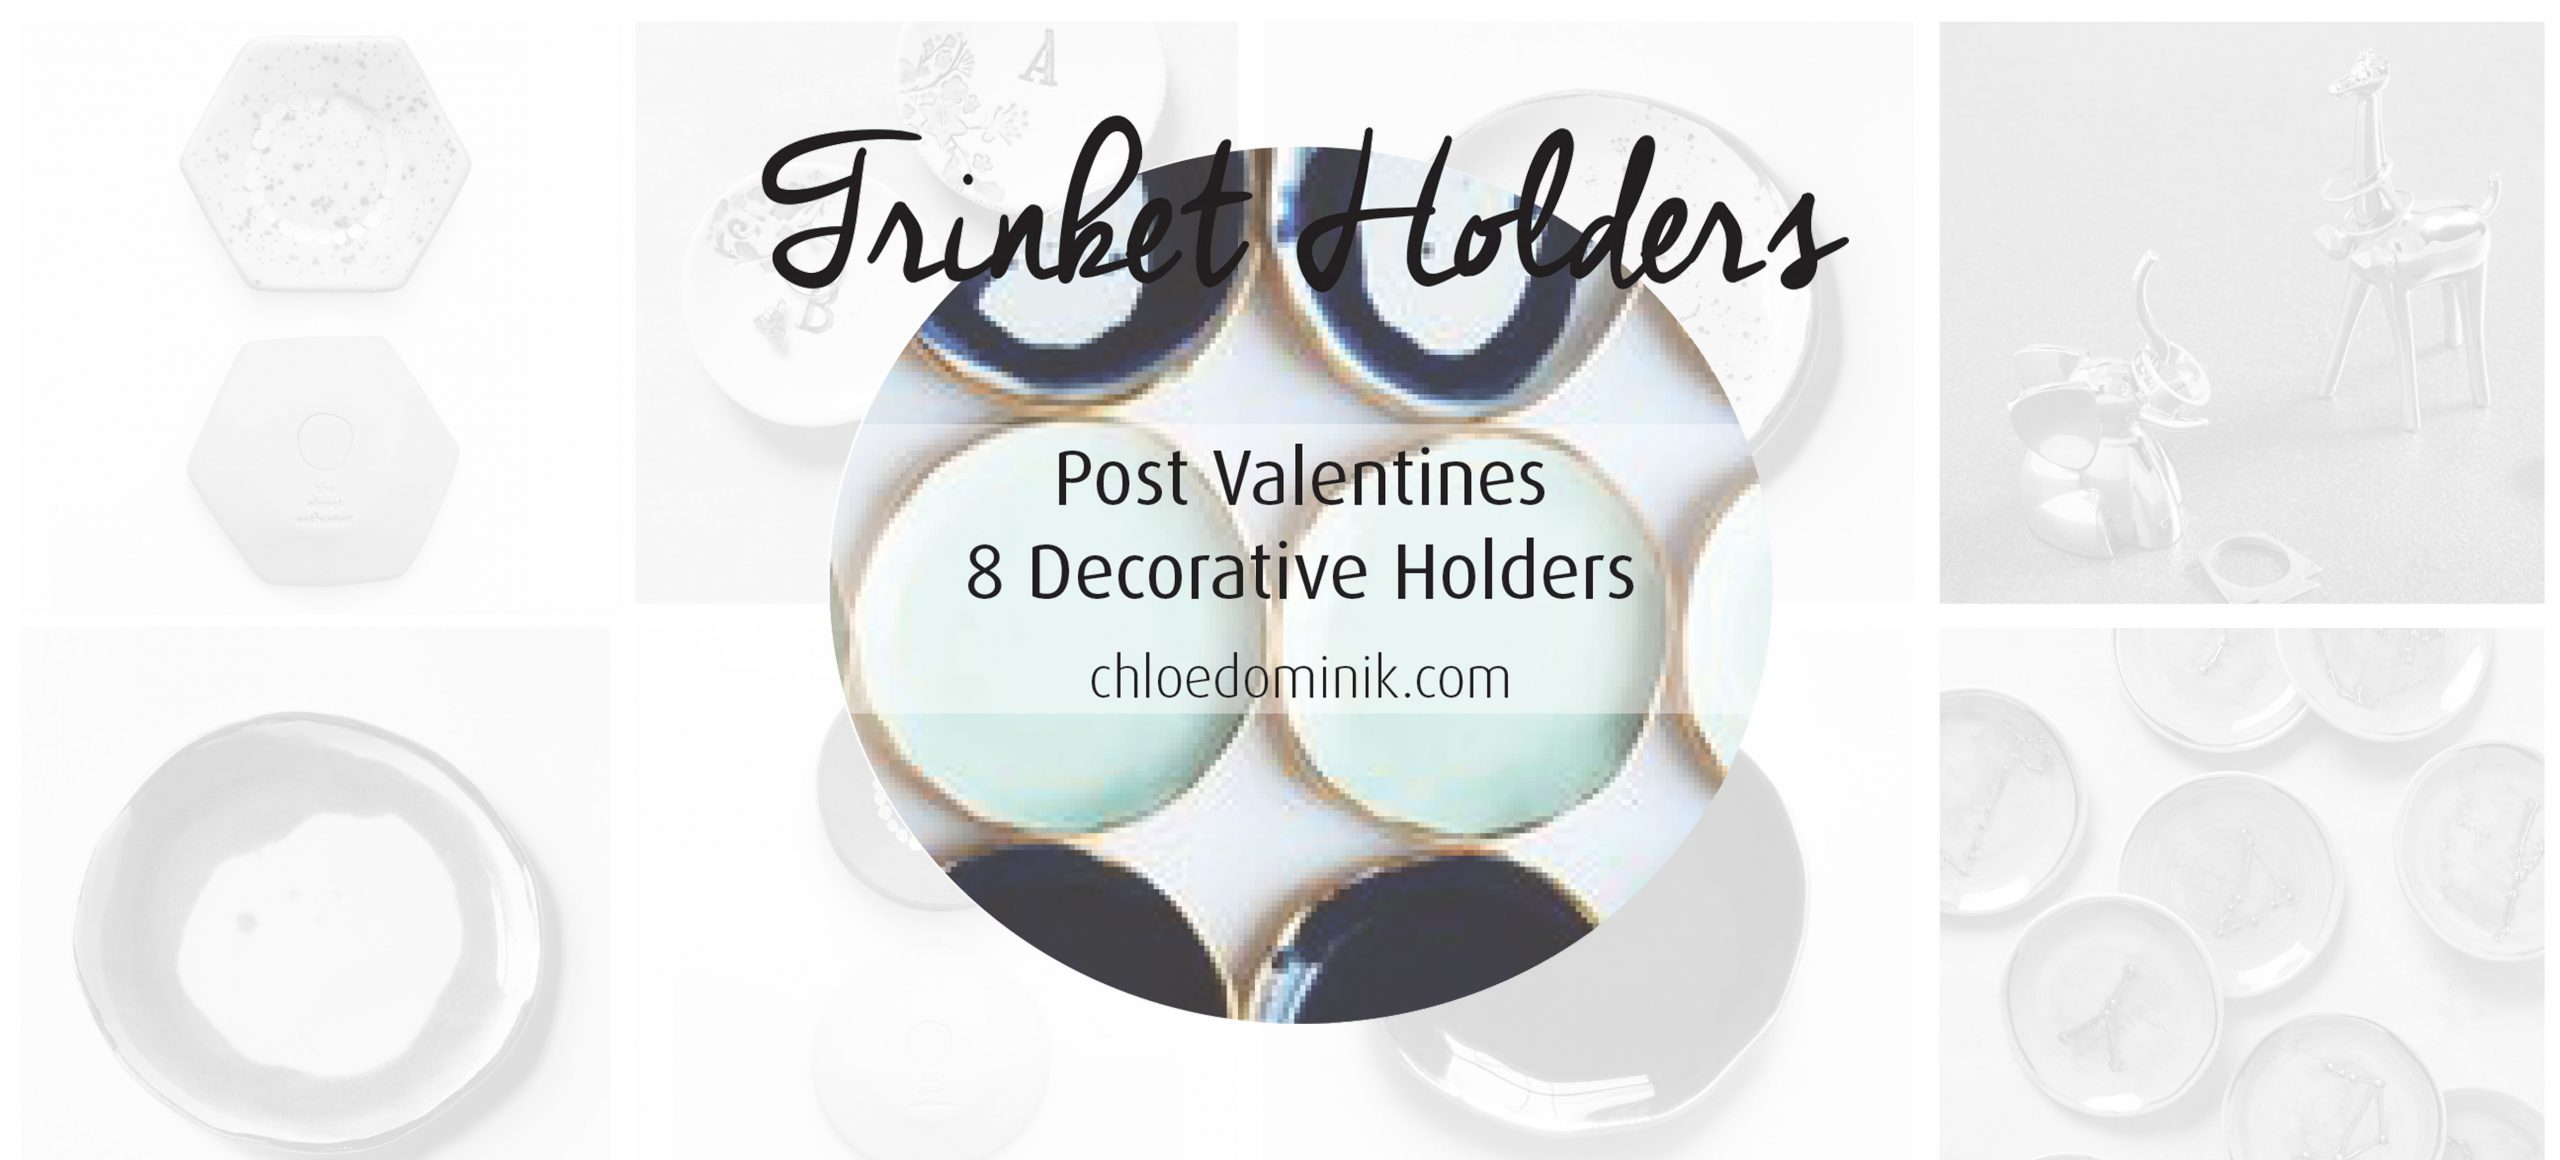 Trinket Holders: Post Valentines 8 Decorative Holders